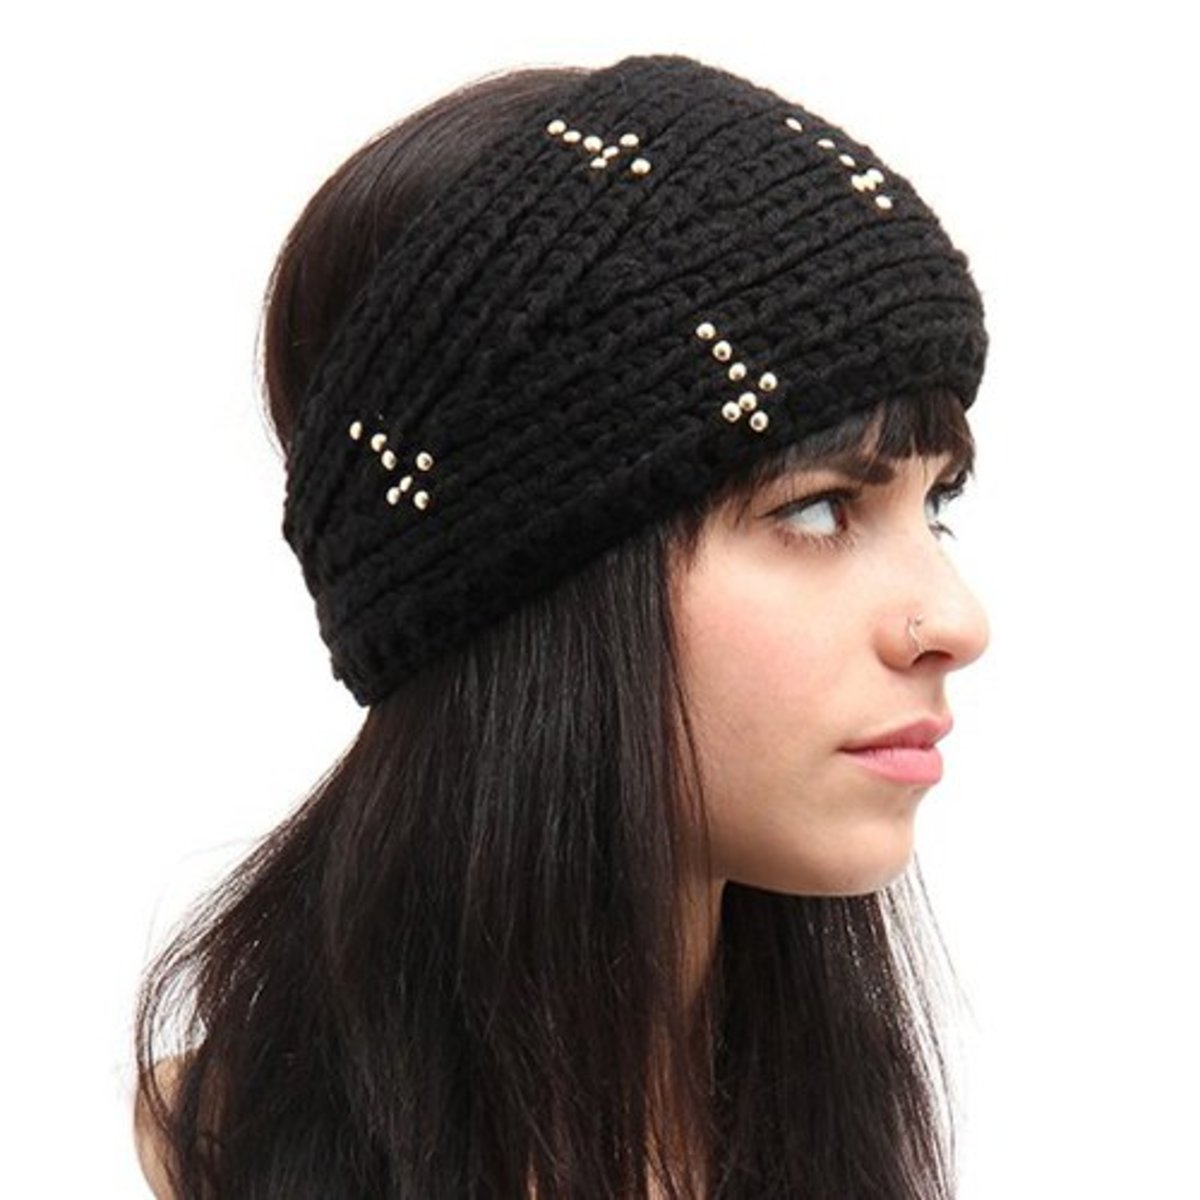 9-Knit-Headband-with-Beaded-Cross-Detail